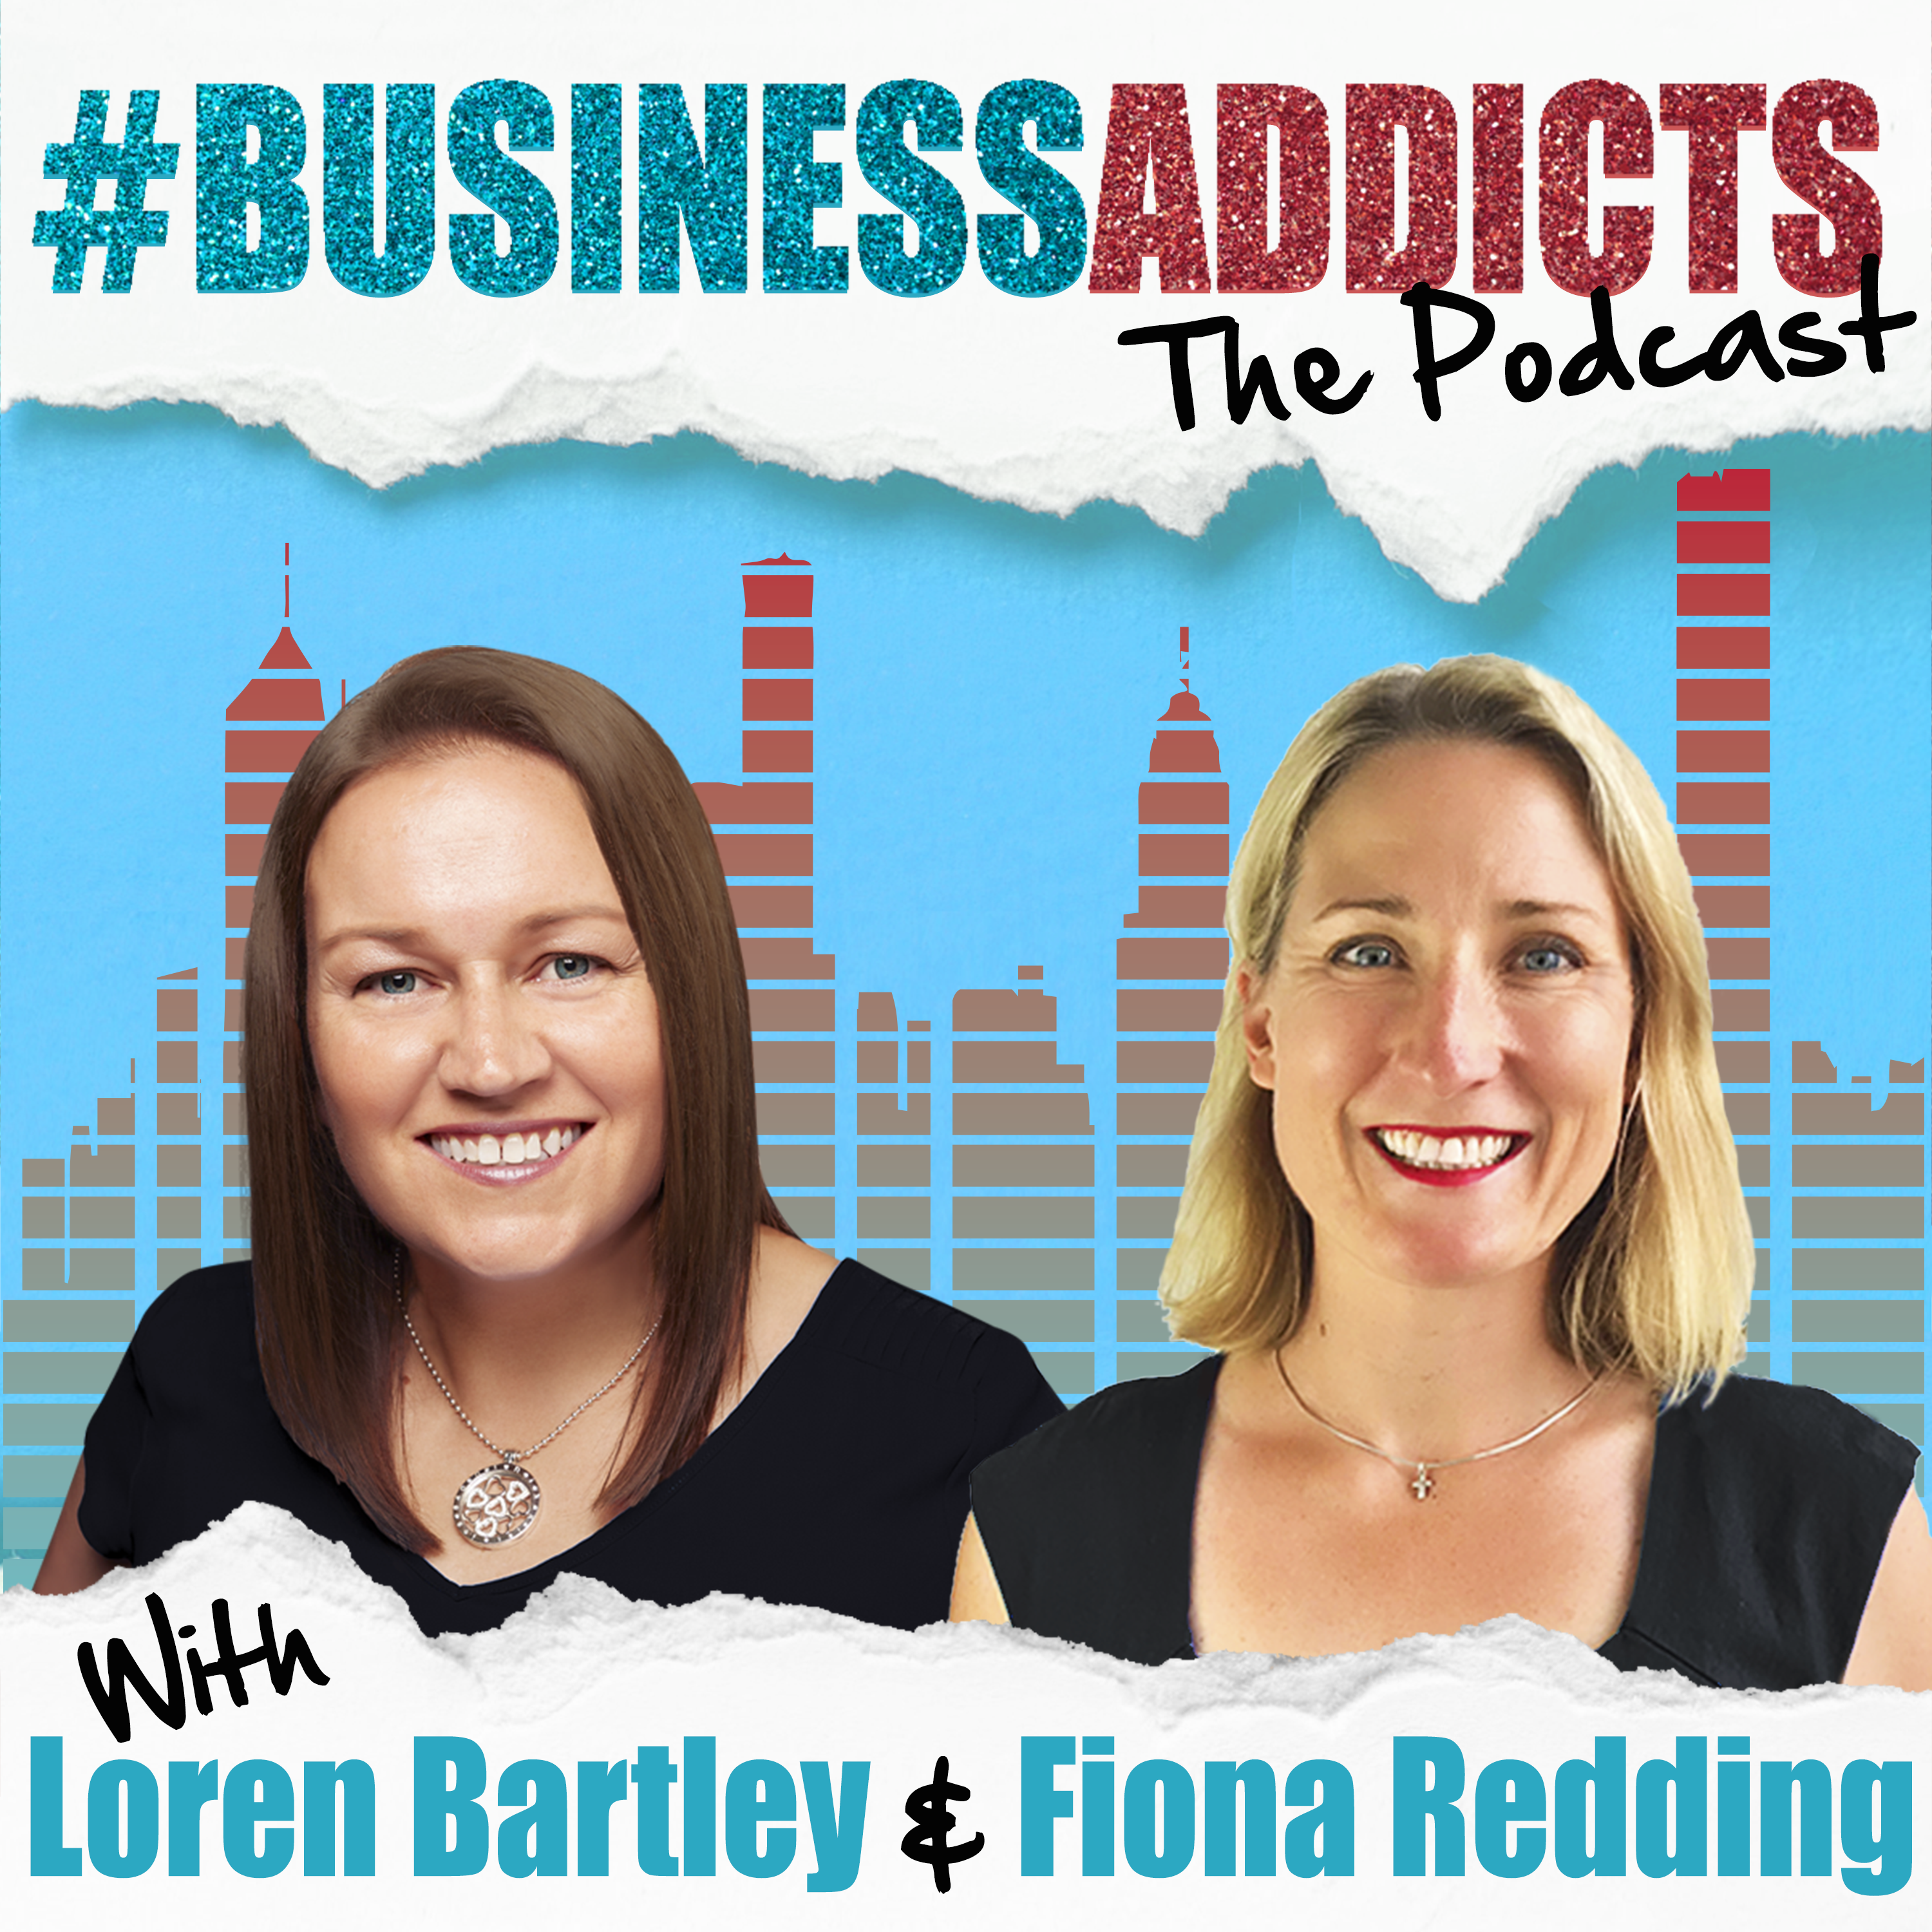 Business Addicts - The Podcast For People Who Are Addicted To Business show art